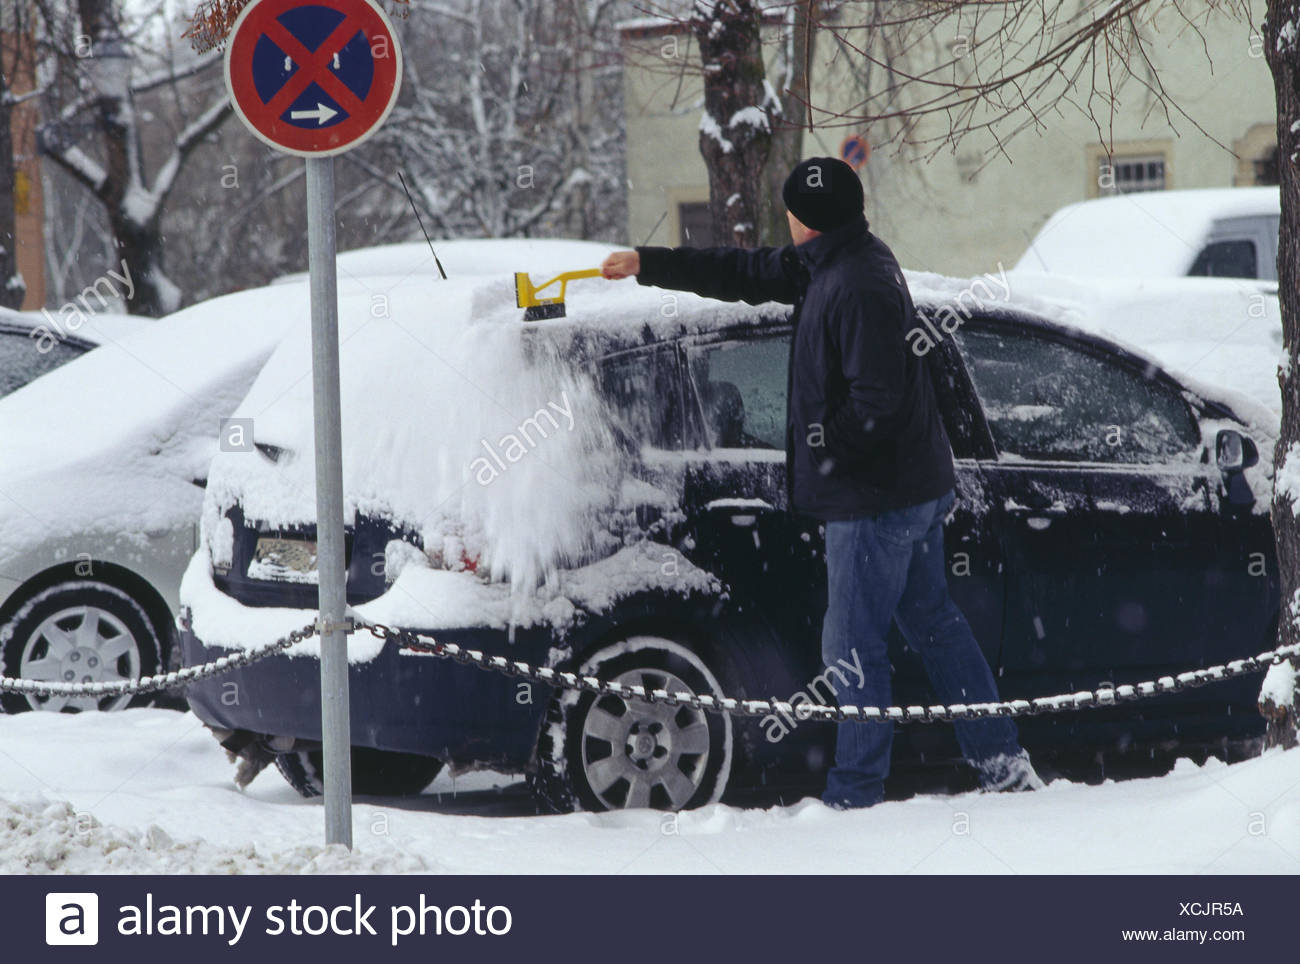 Roadside, parking lot, man, car, snow, sweep, from above, winters, vehicle, passenger car, vehicle owner, Eiskratzen, sweep, handbrushes, clean, Stock Photo